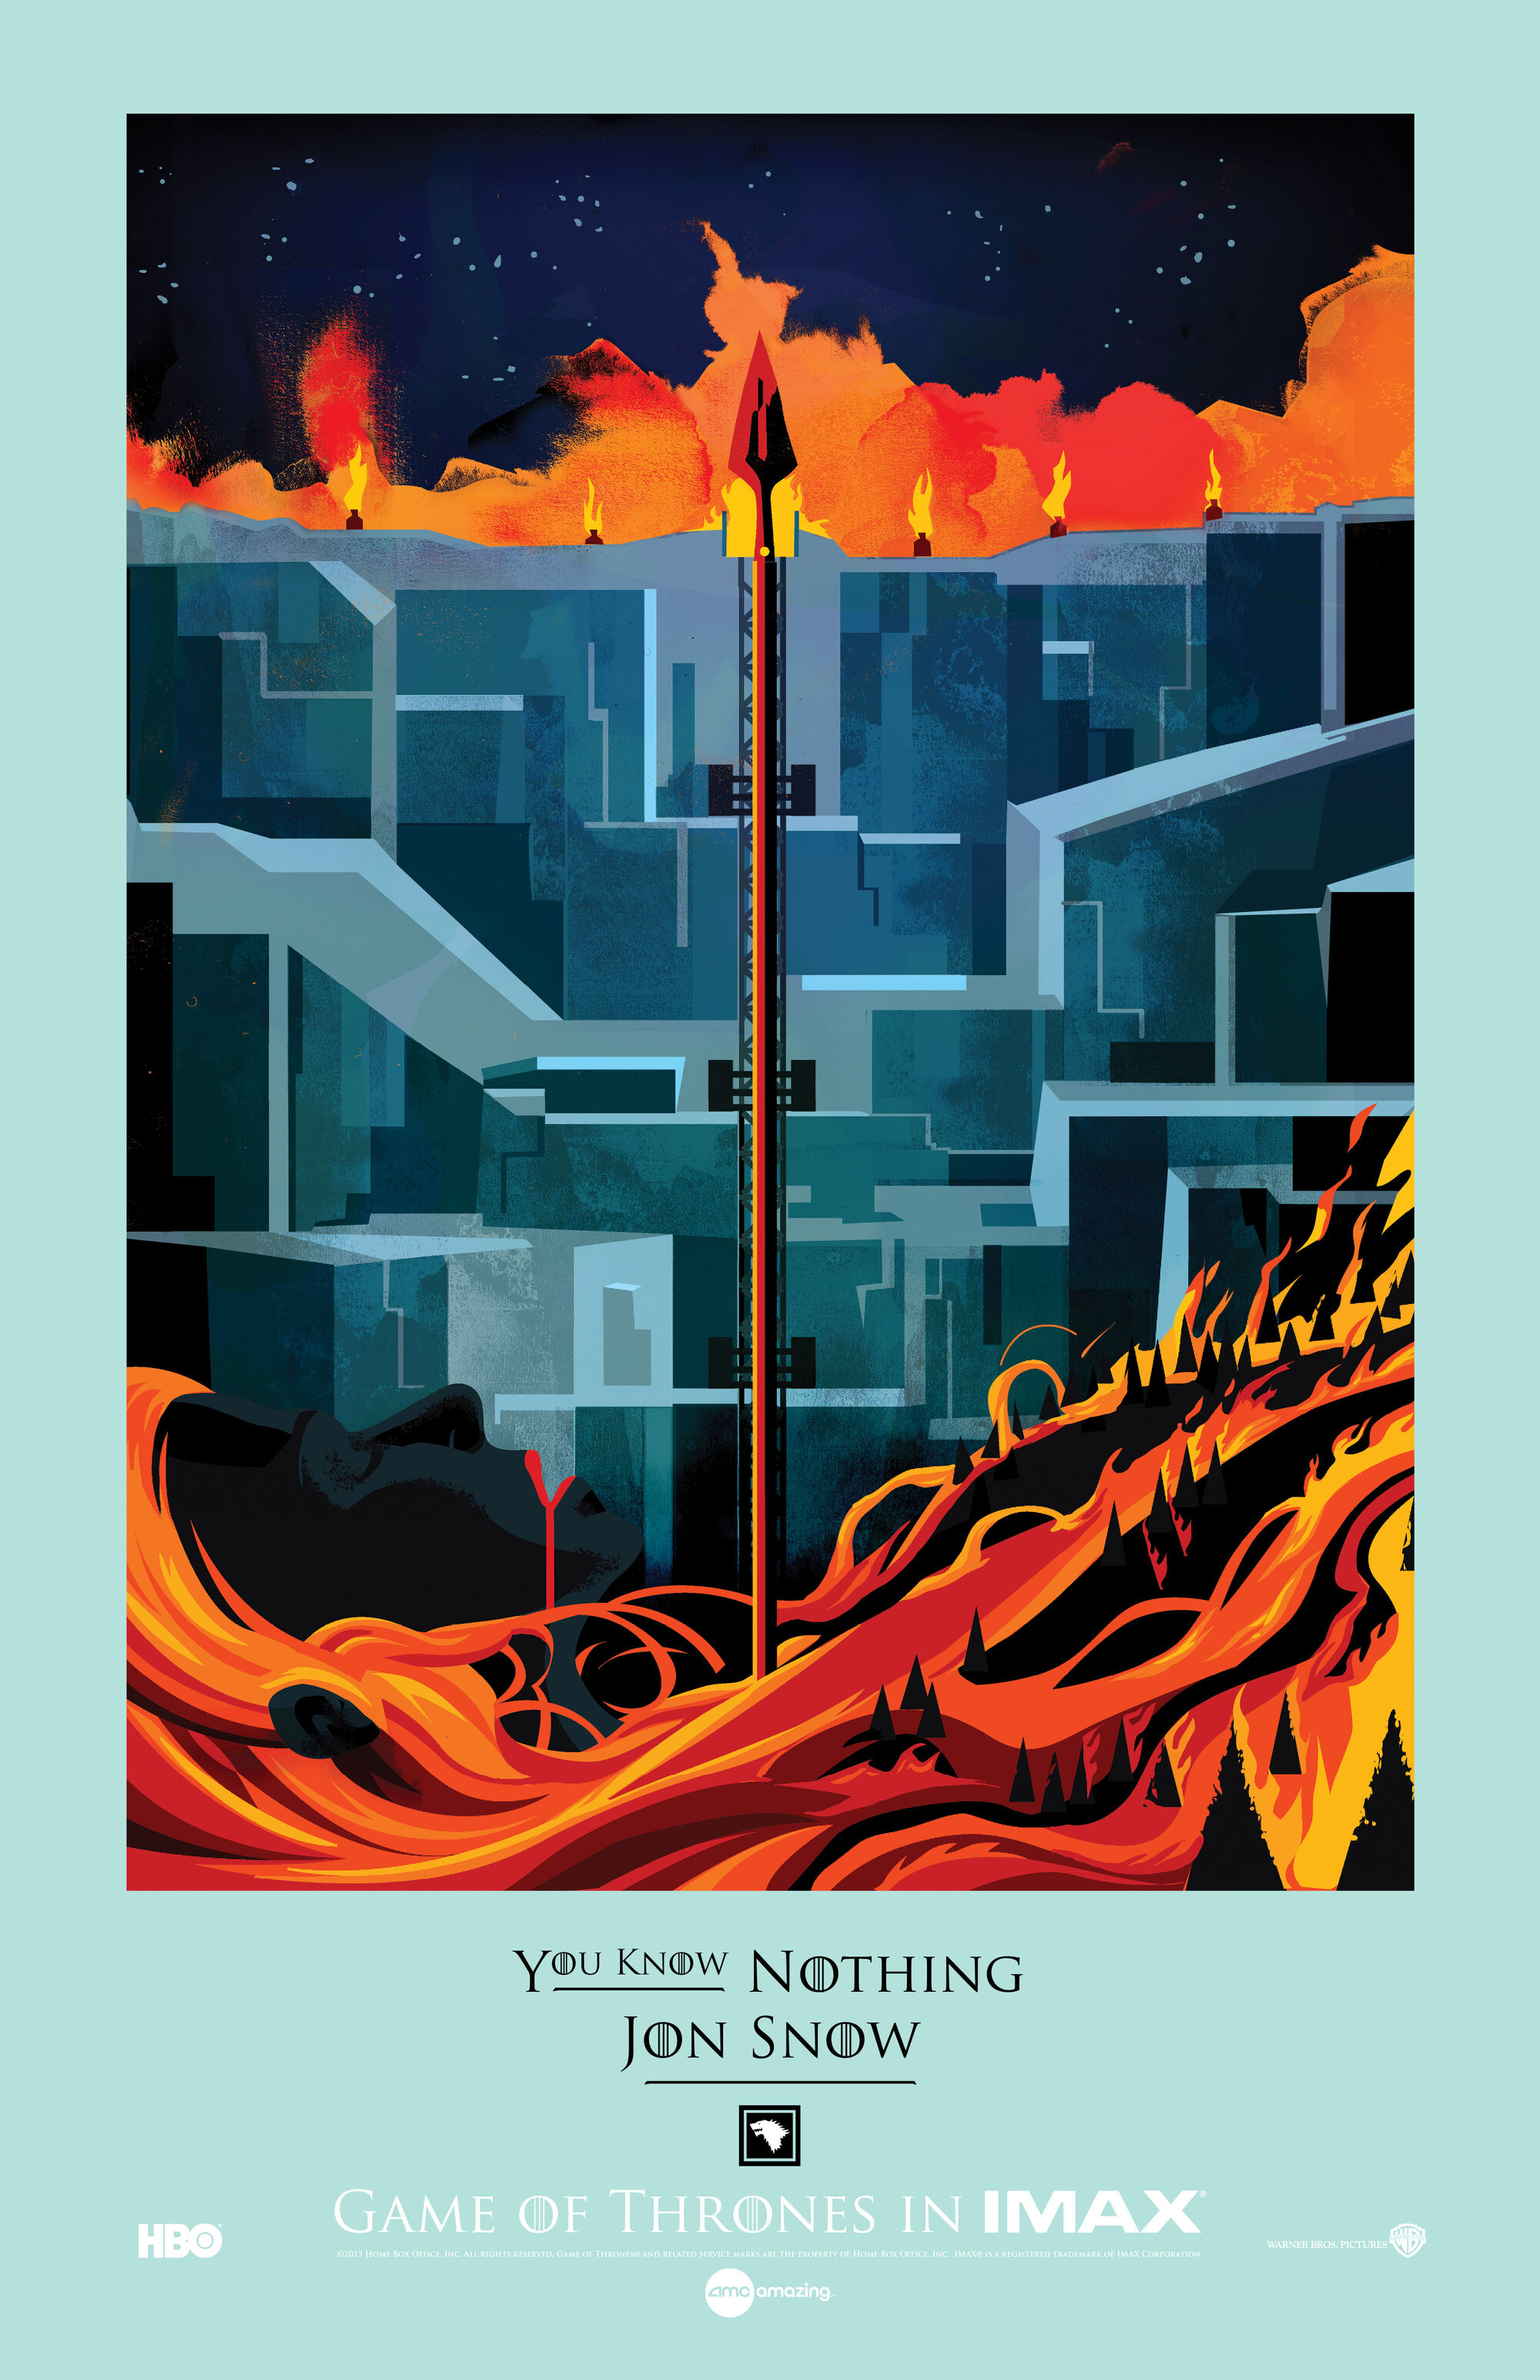 Poster design game - Image Game Of Thrones Imax Poster The Watchers On The Wall 663x1024 Artwork By Robert Ball Jpg Game Of Thrones Wiki Fandom Powered By Wikia